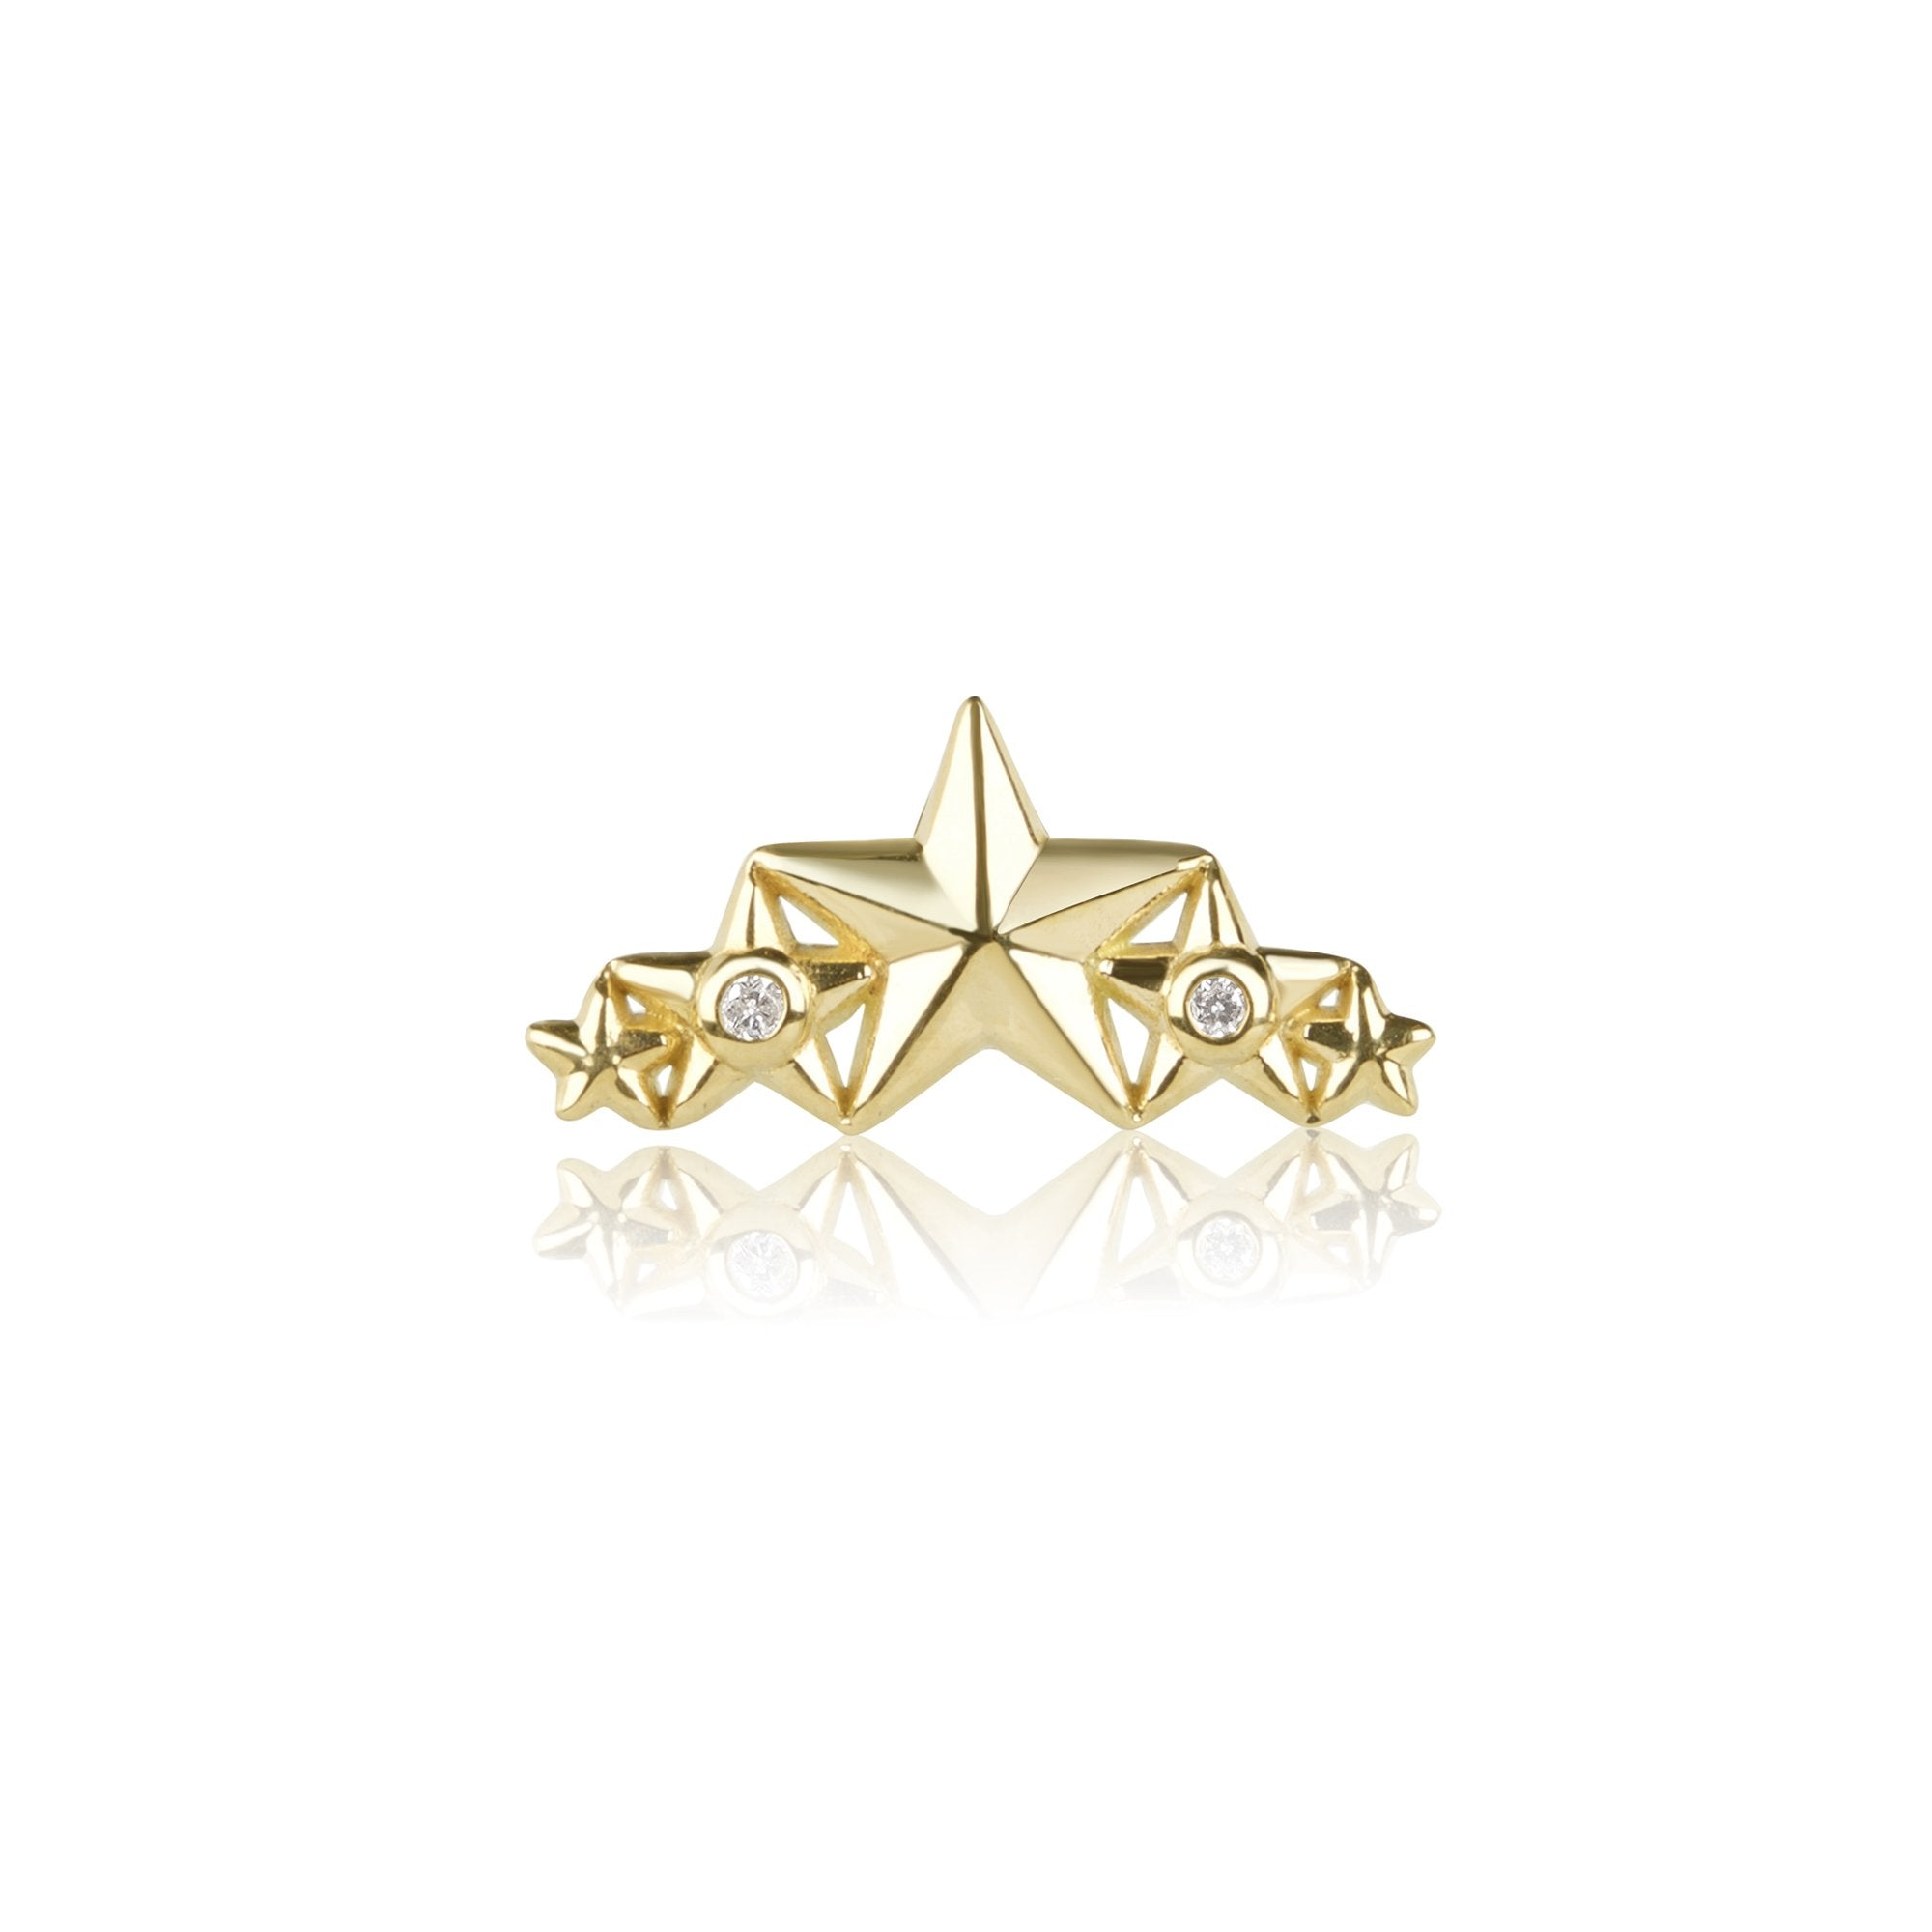 16 Gauge Gold Star and Diamond Cluster Threaded Stud with Titanium Closure